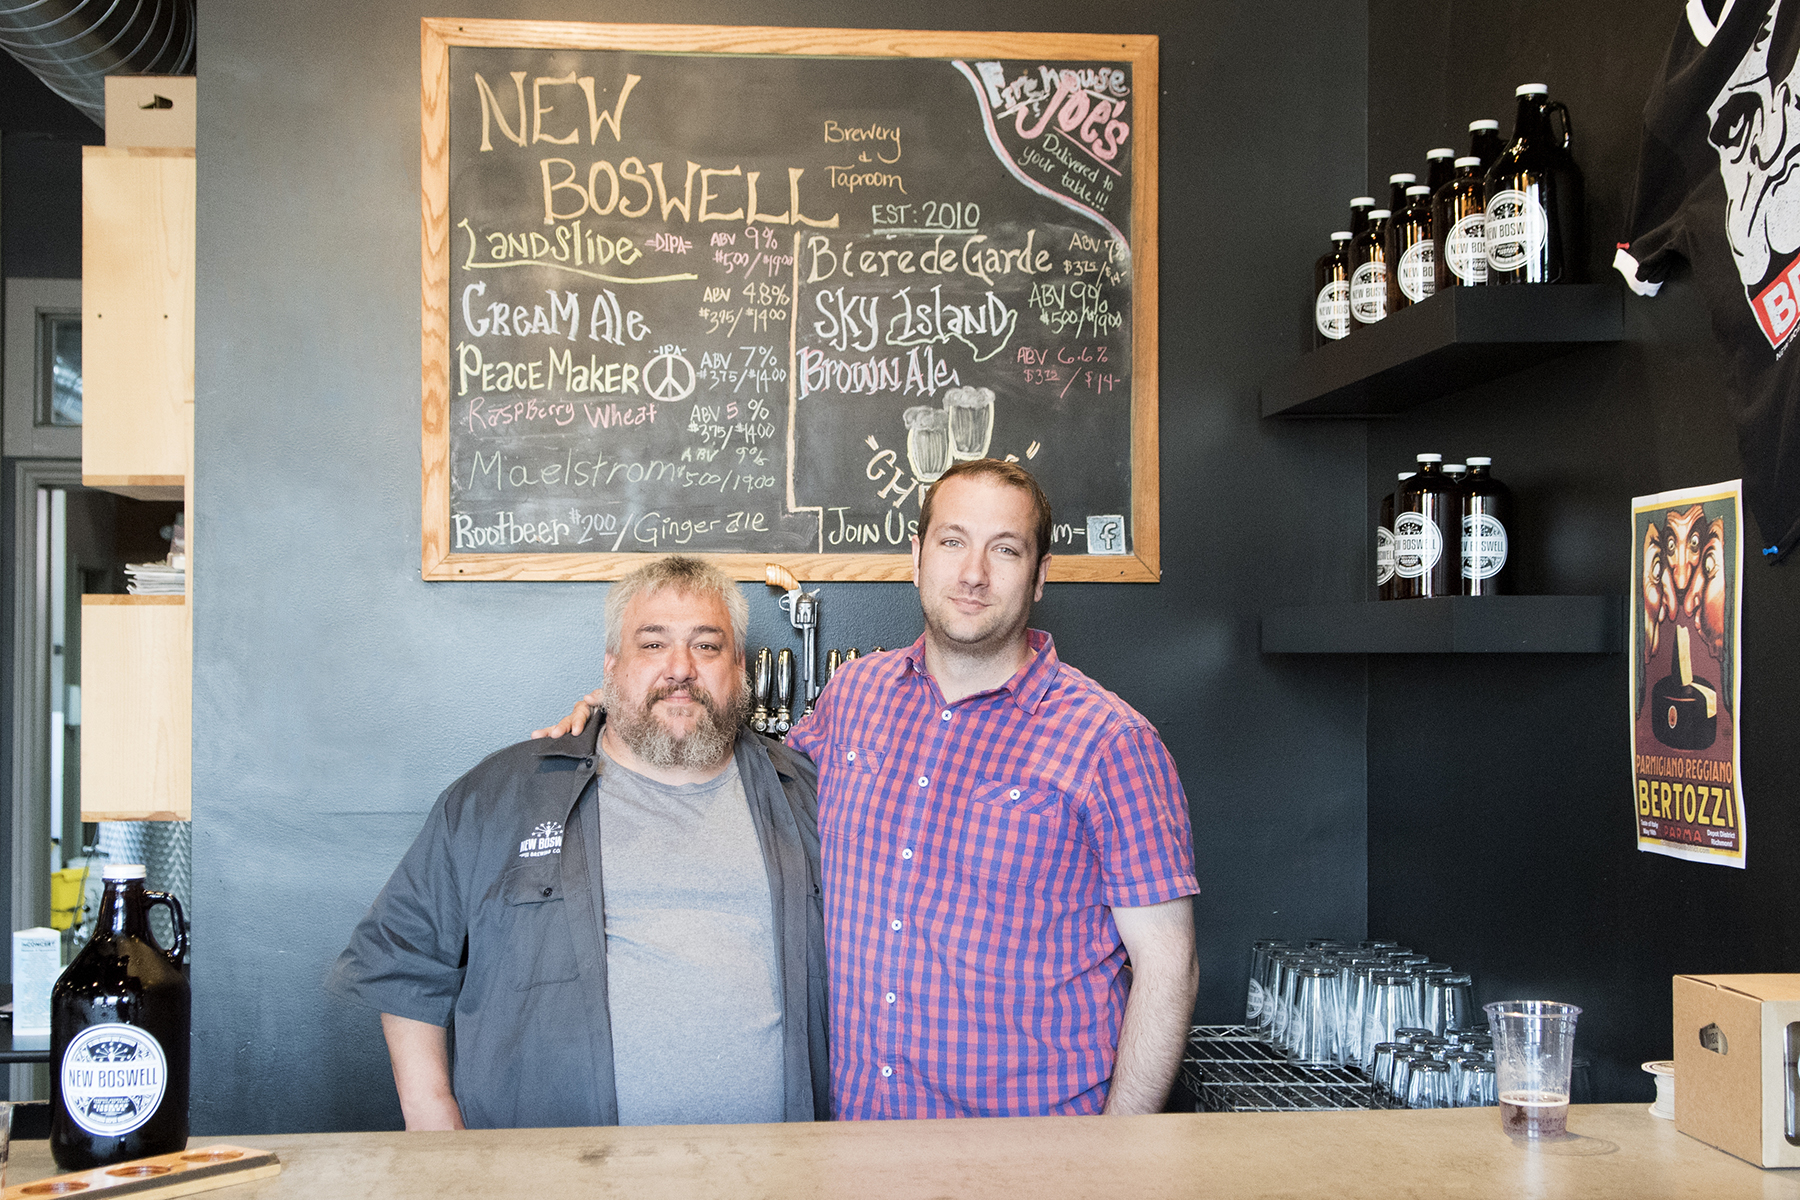 Shawn Davis and Rod Landess, New Boswell Brewing Company